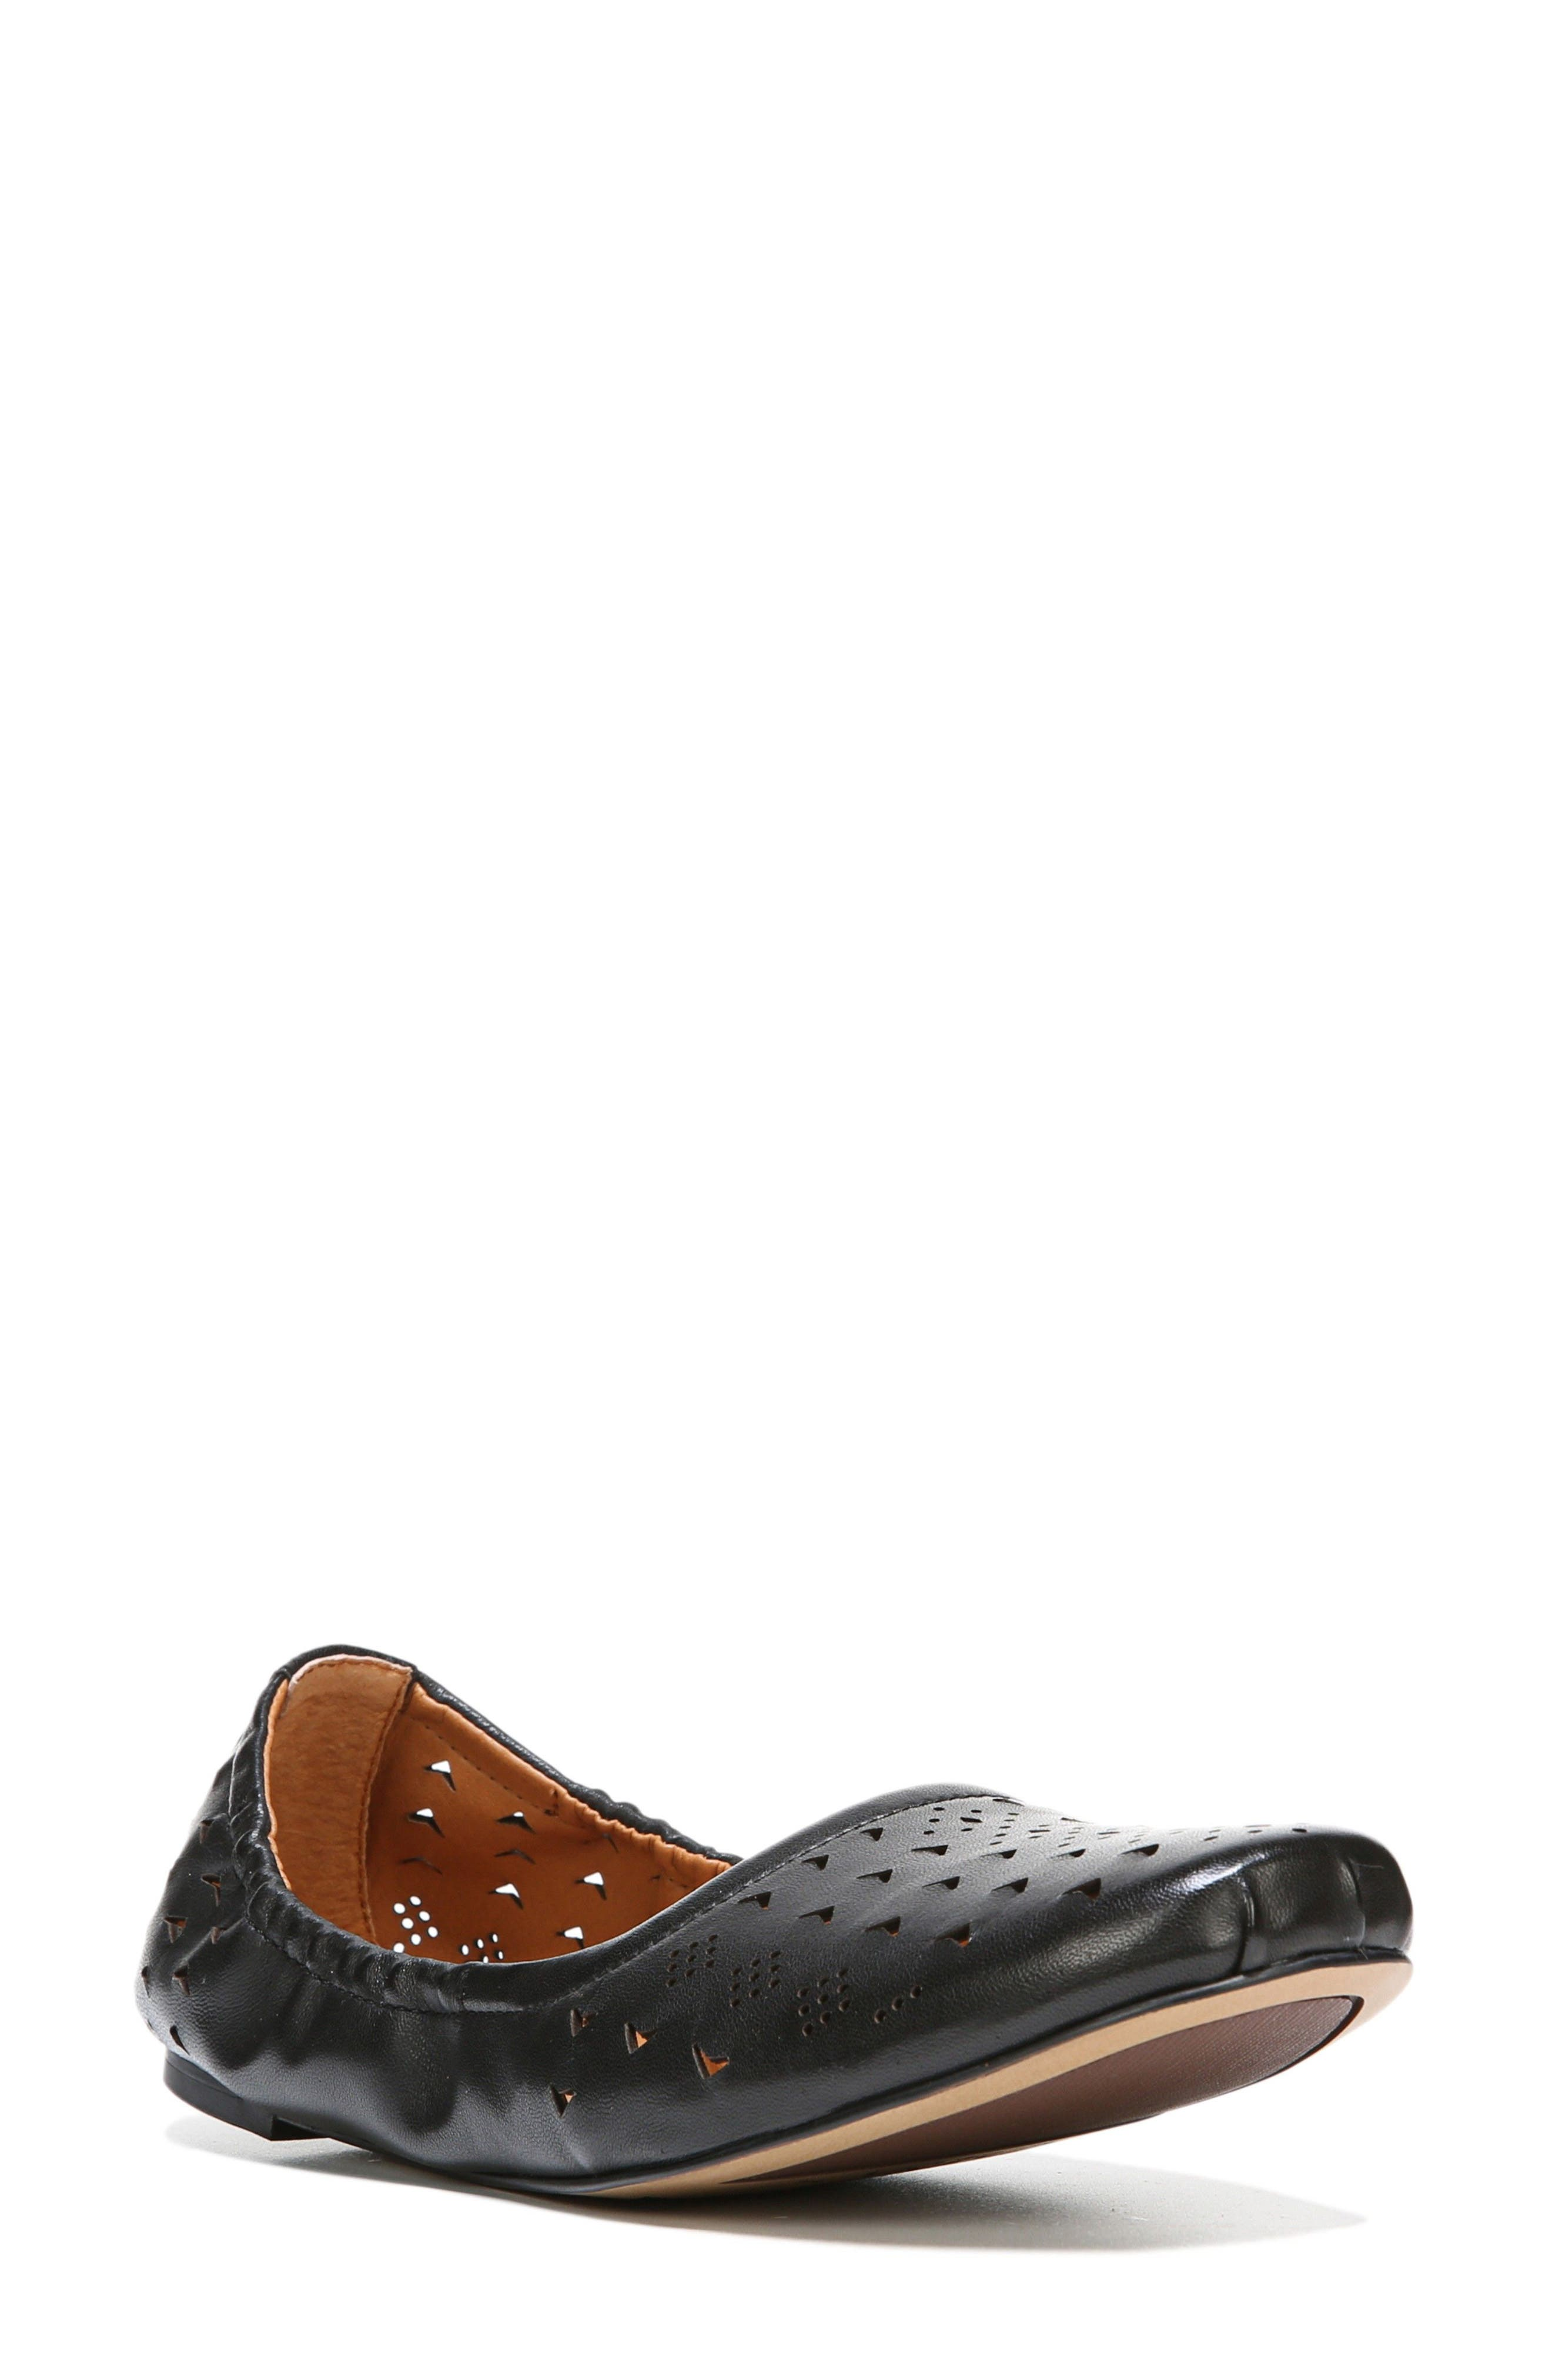 Brewer Perforated Ballet Flat,                             Main thumbnail 1, color,                             001